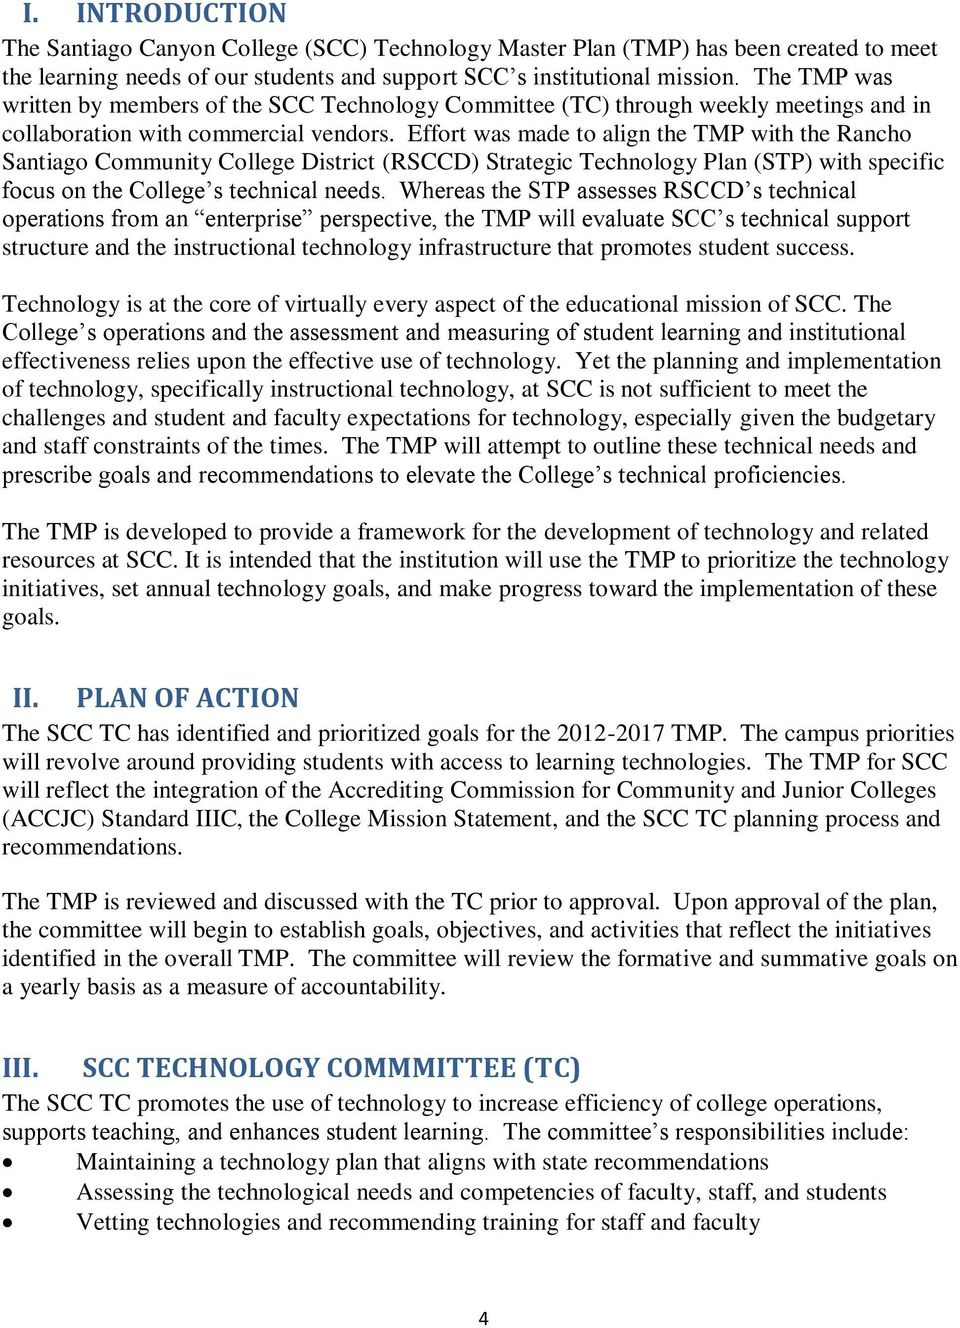 Effort was made to align the TMP with the Rancho Santiago Community College District (RSCCD) Strategic Technology Plan (STP) with specific focus on the College s technical needs.